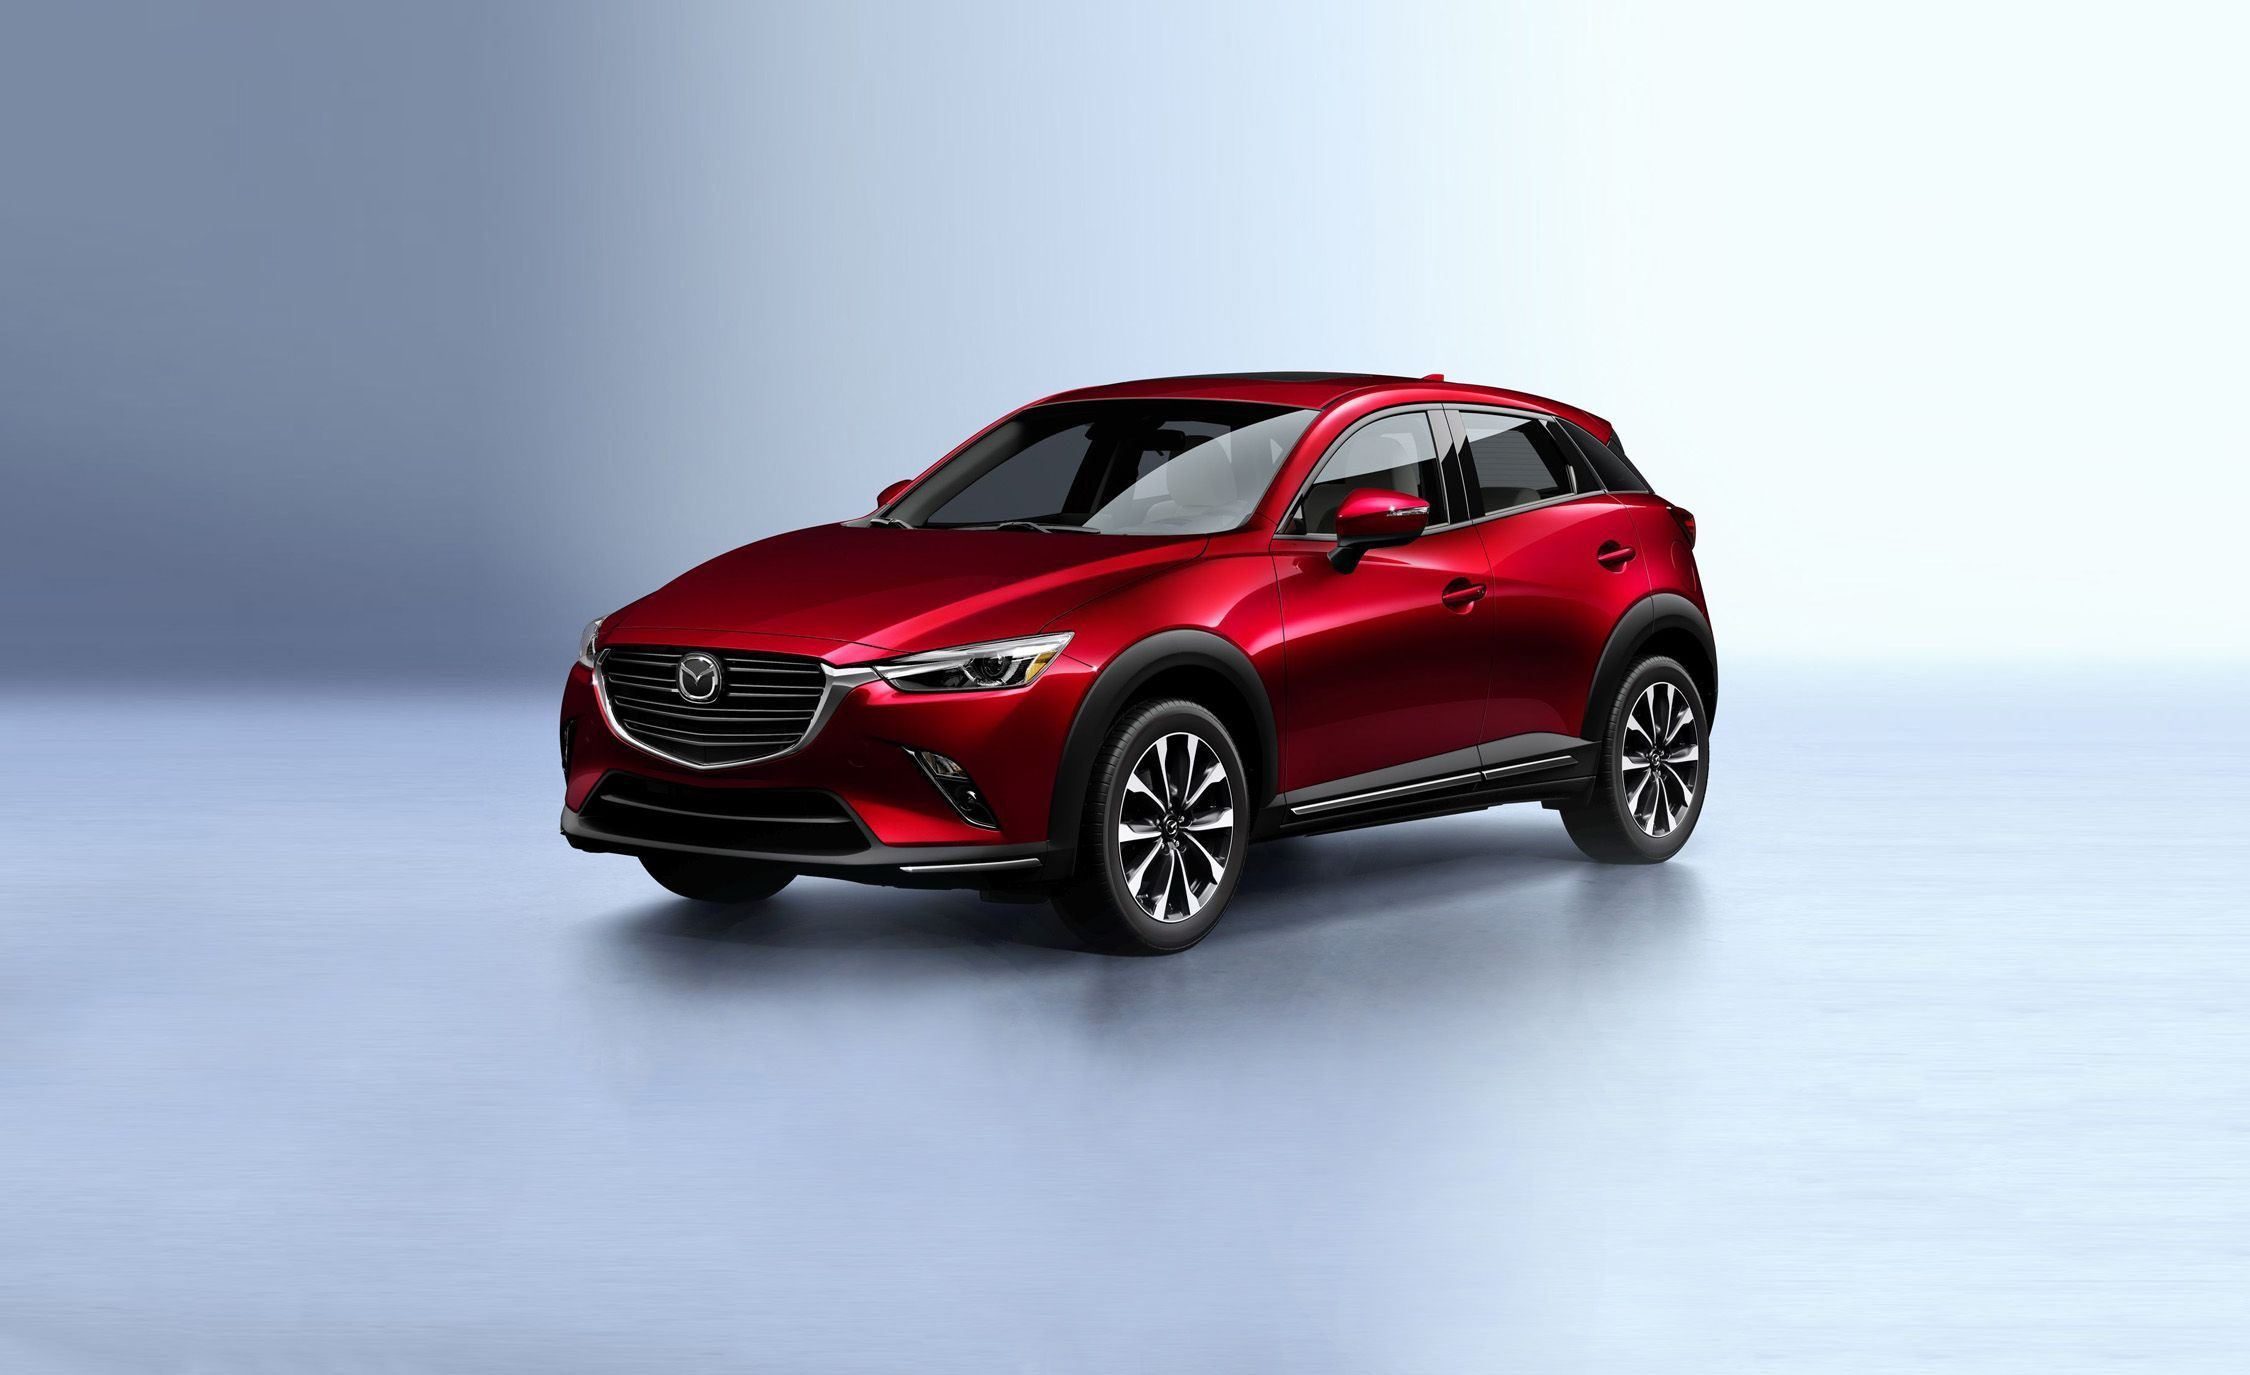 Best Of Mazda Cx 3 2019 Interior Arena And Review di 2020